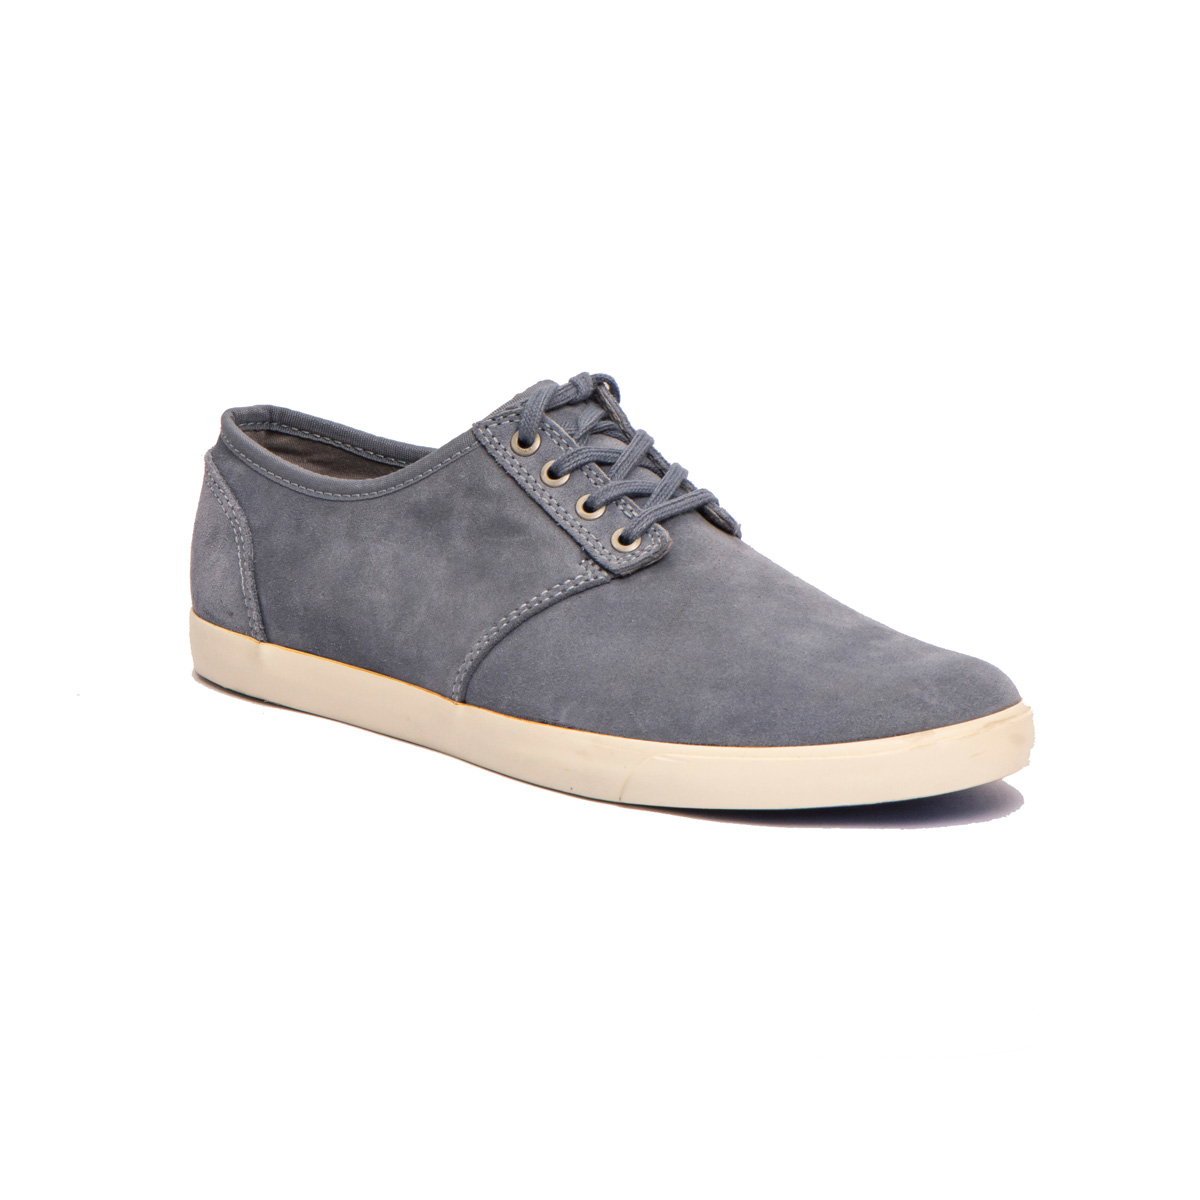 27b65aad4dc CLARKS Torbay Lace-173-20357613 Torbay Lace | Exclusive Shoes ...